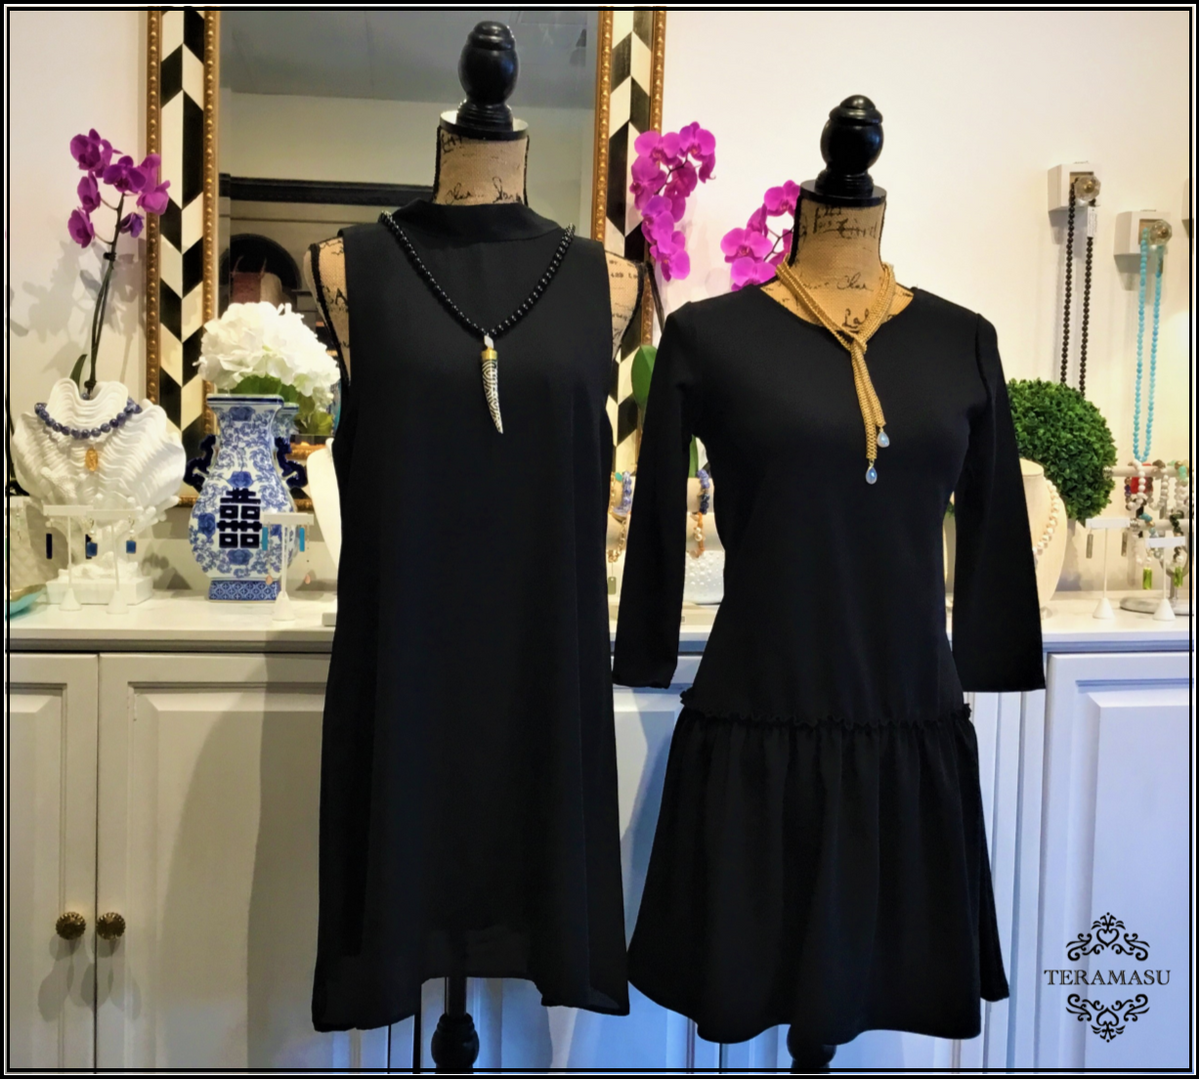 Monday Must-Have: The Perfect Little Black Dress from Teramasu